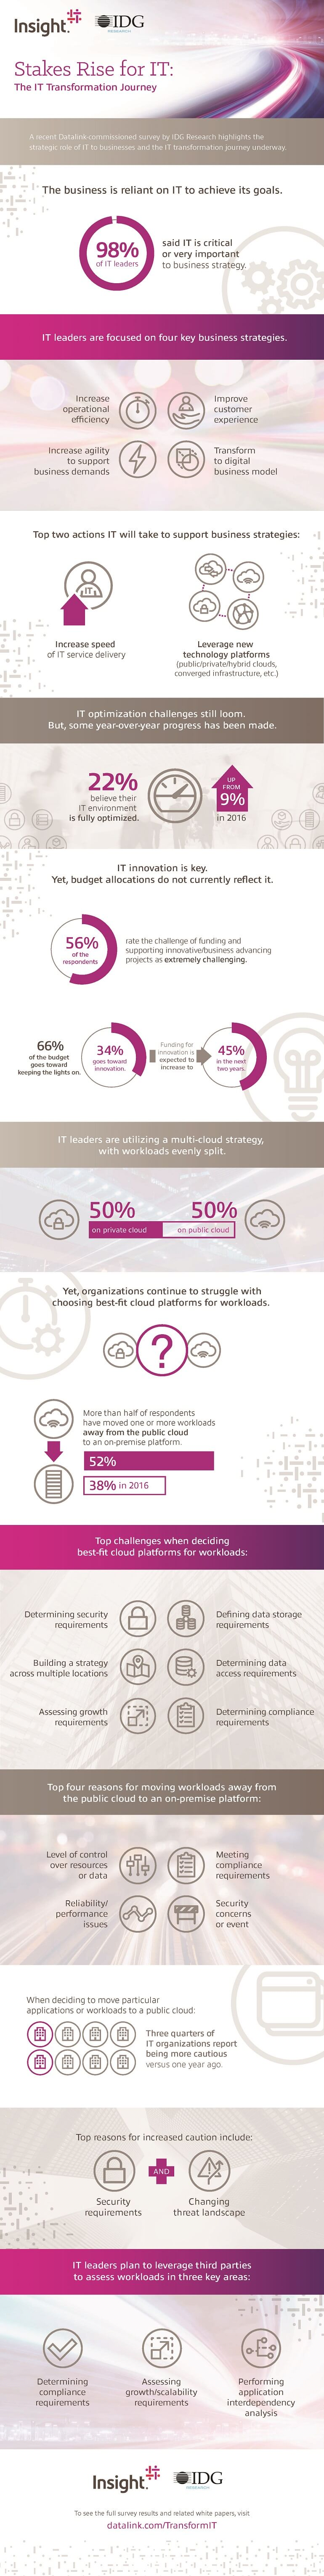 Stakes Rise for IT: The IT Transformation Journey infographic